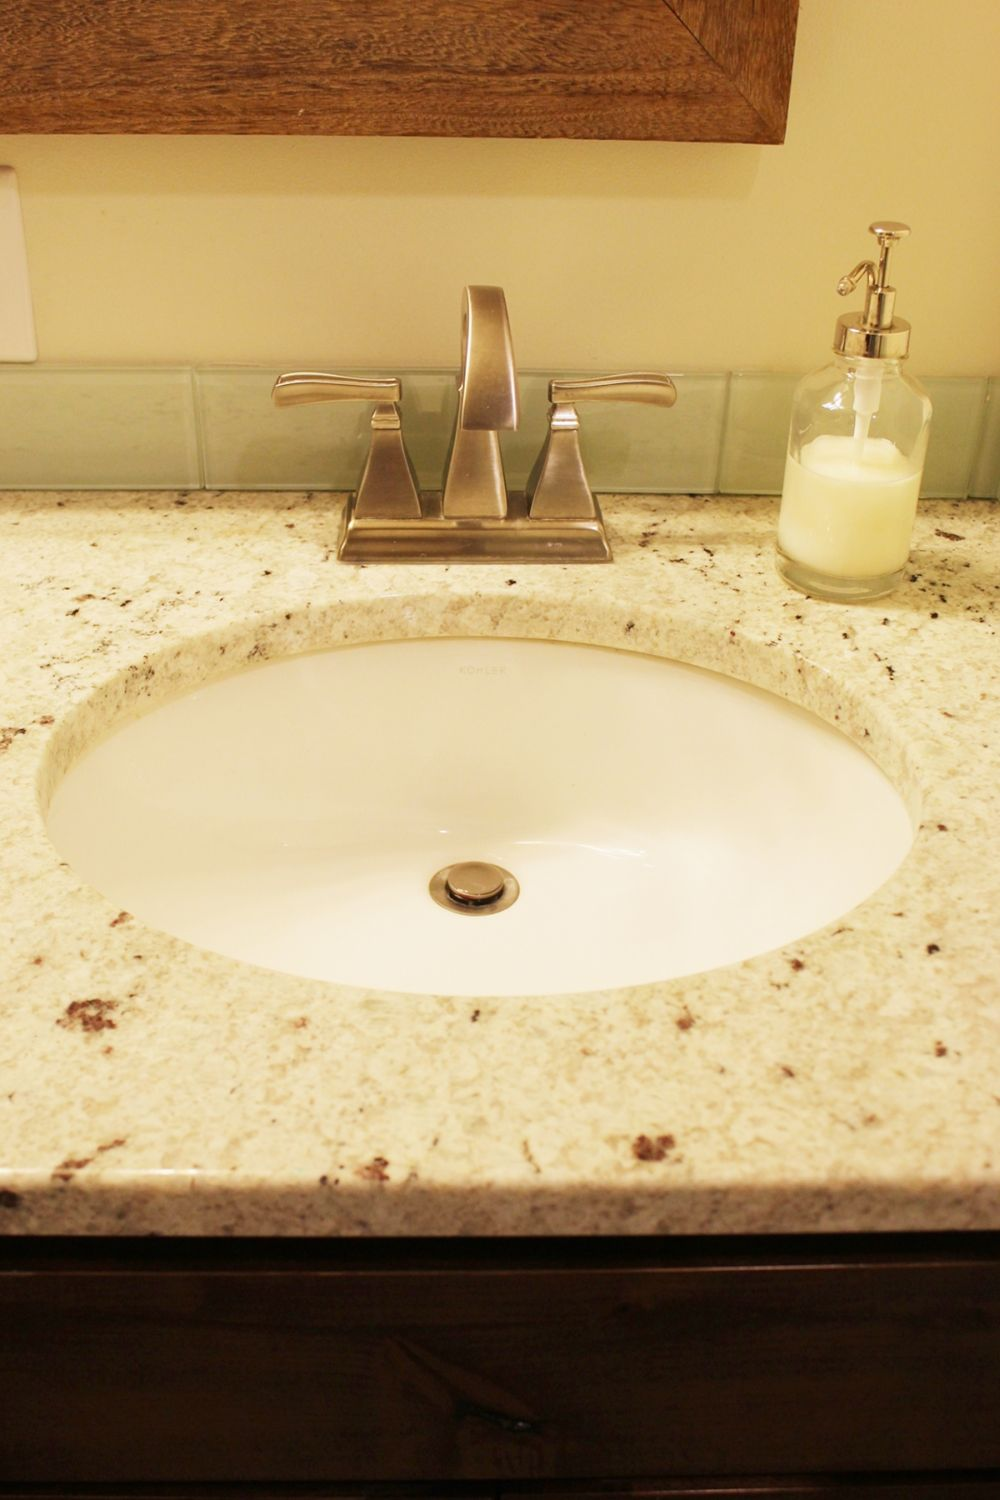 simple under-mount sink and contemporary faucet fixtures